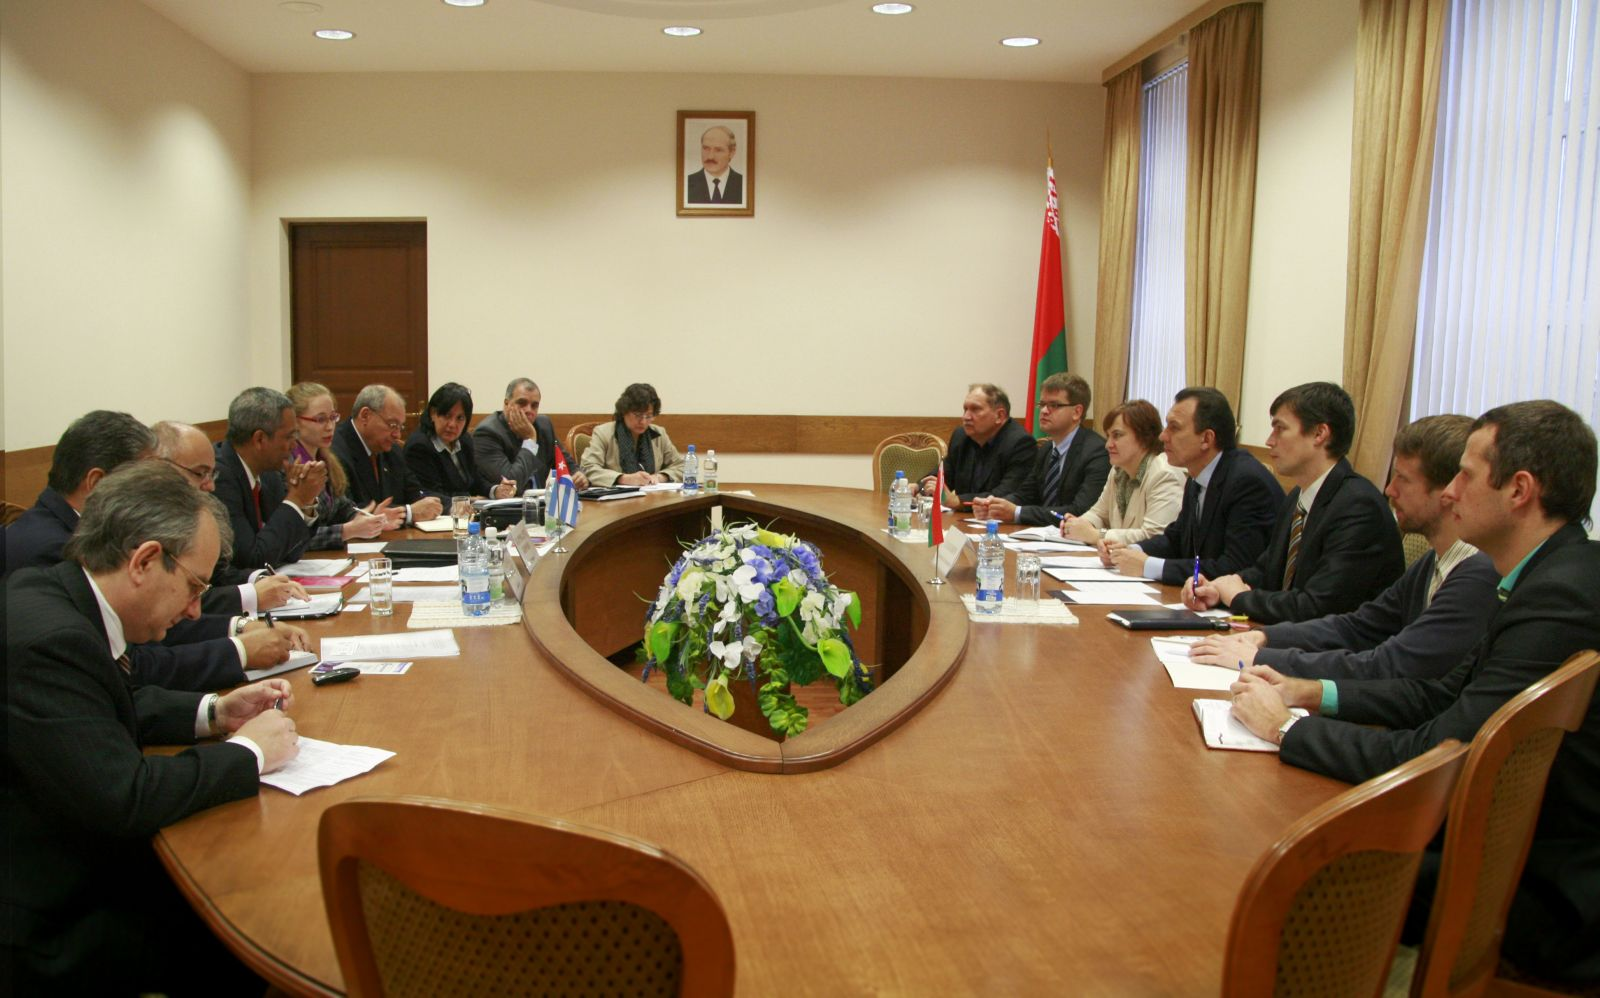 Delegates from Belarus and Cuba convene to discuss economic cooperation and trade between the two countries.